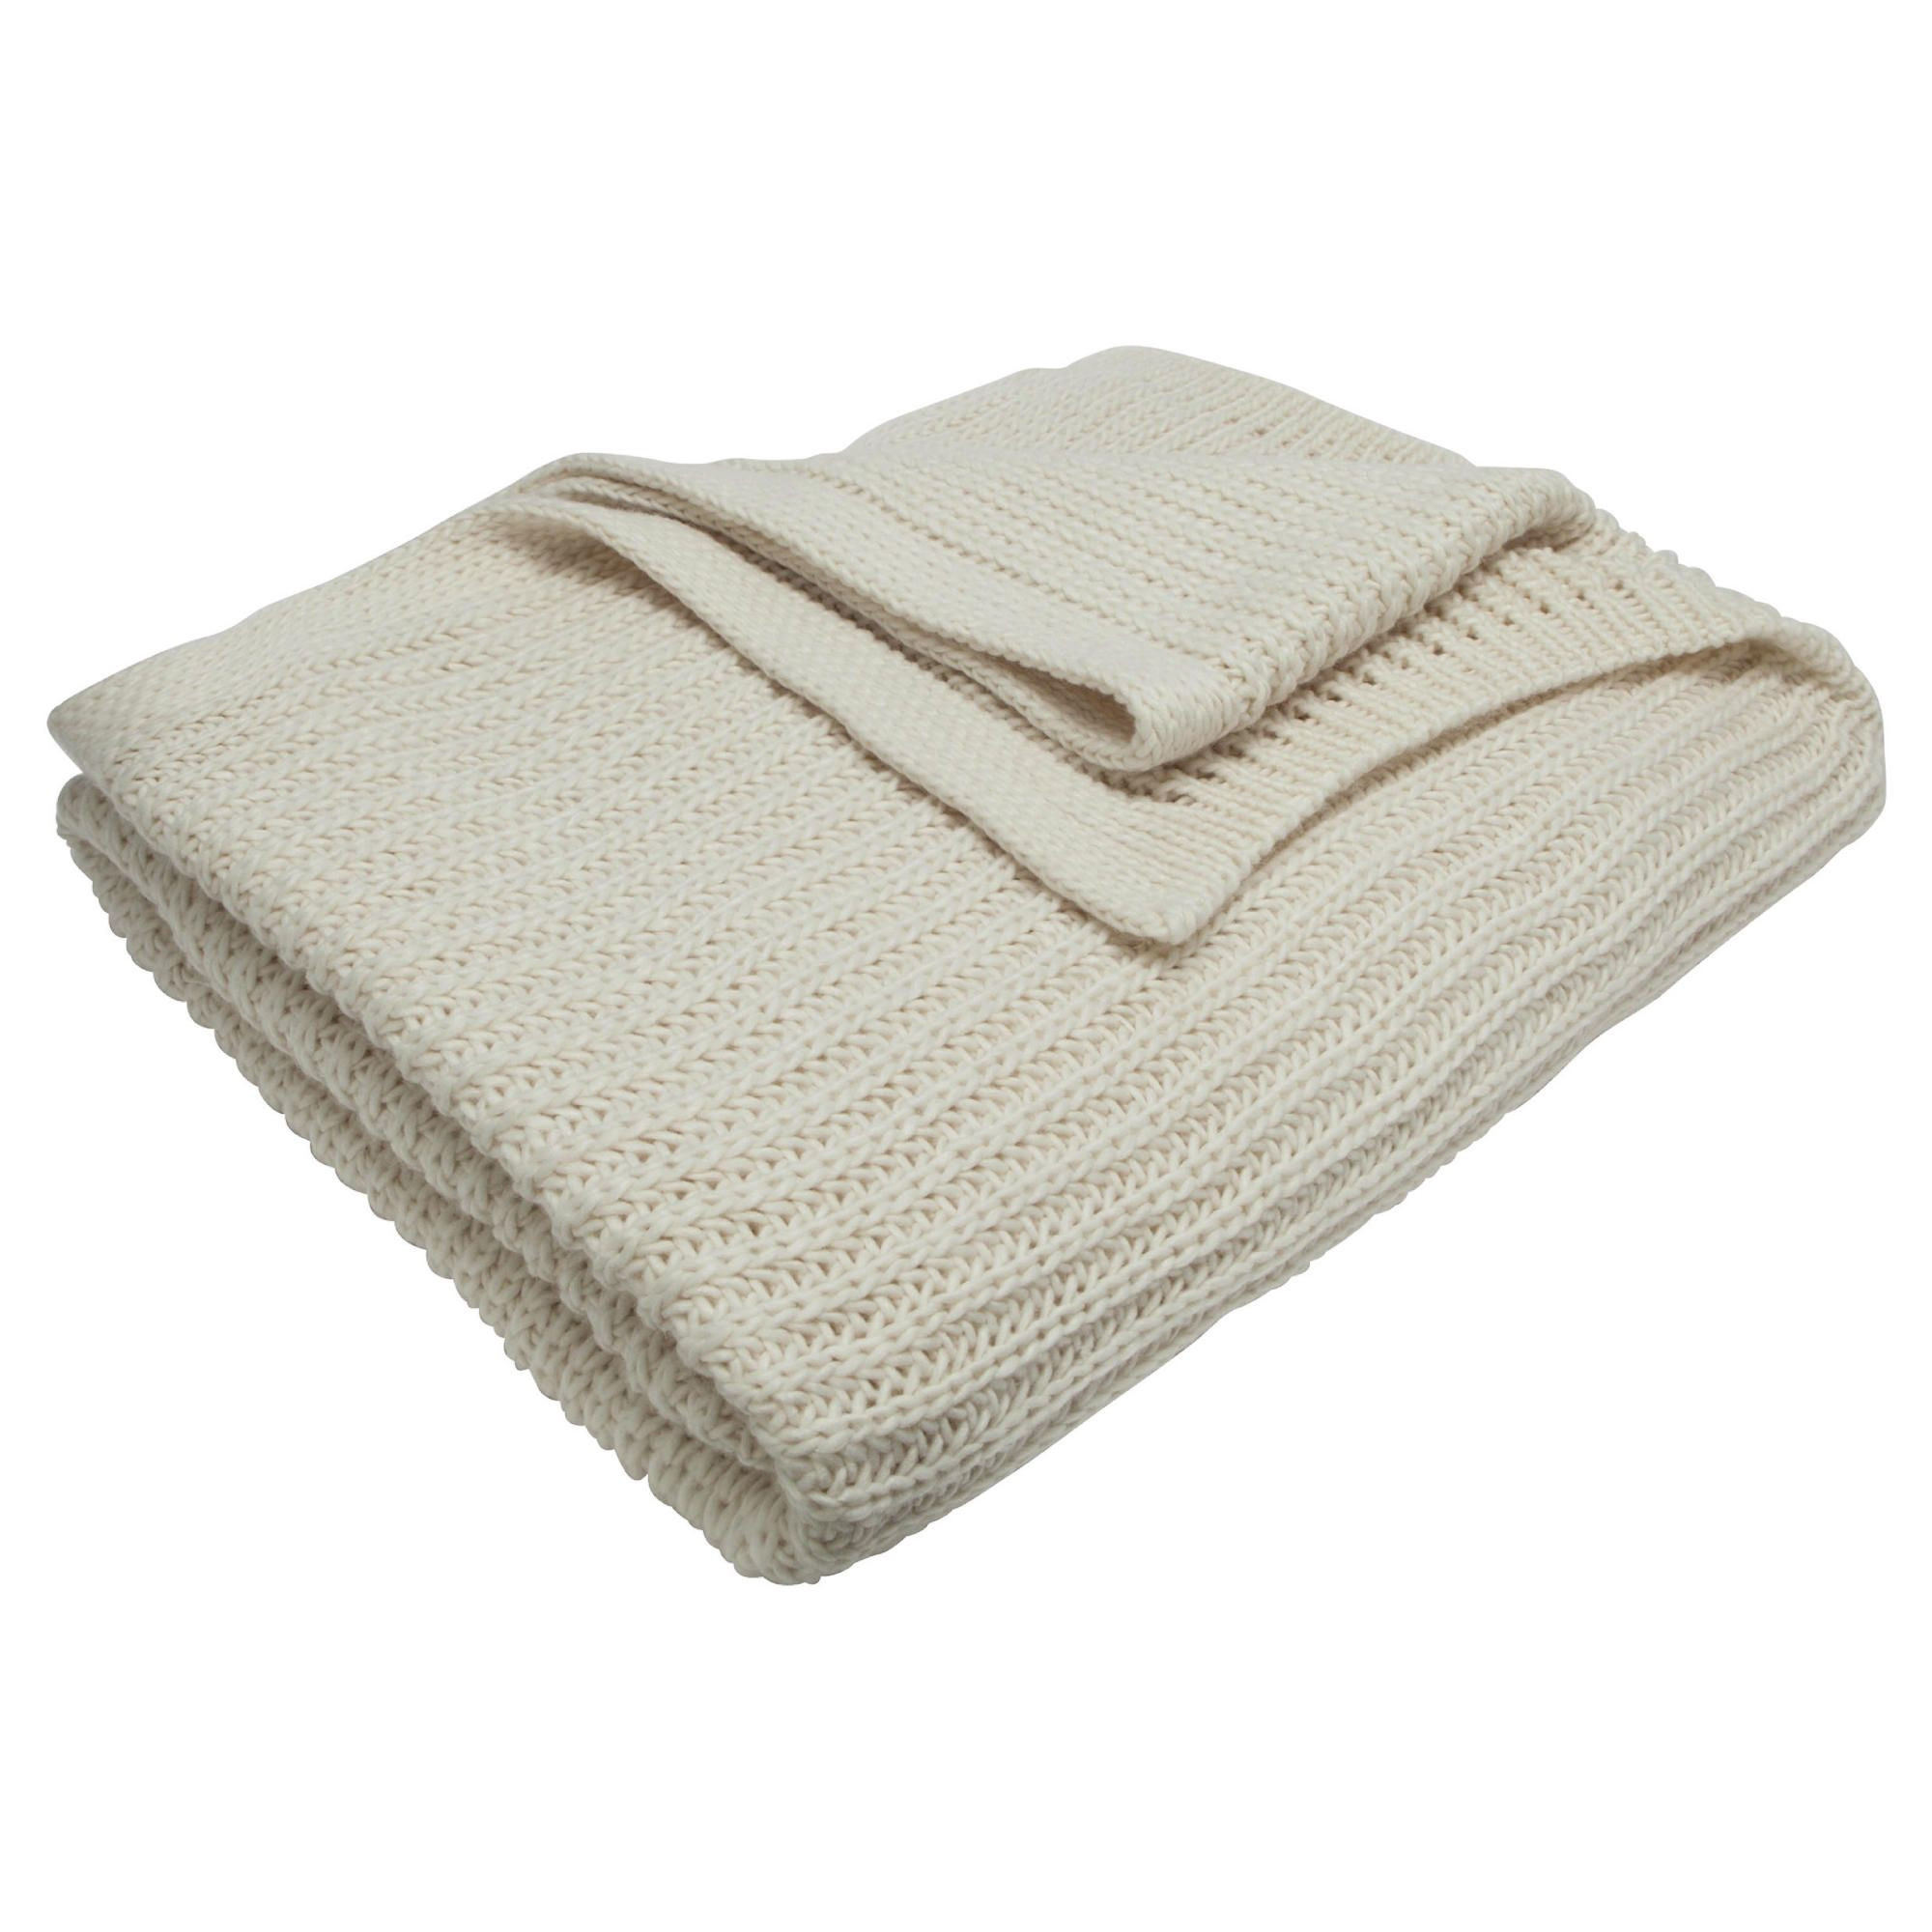 Thick Knit Blanket Luxury Bedroom Designs Chunky Lavender Throw Blanket with Fringe Of Wonderful 47 Models Thick Knit Blanket